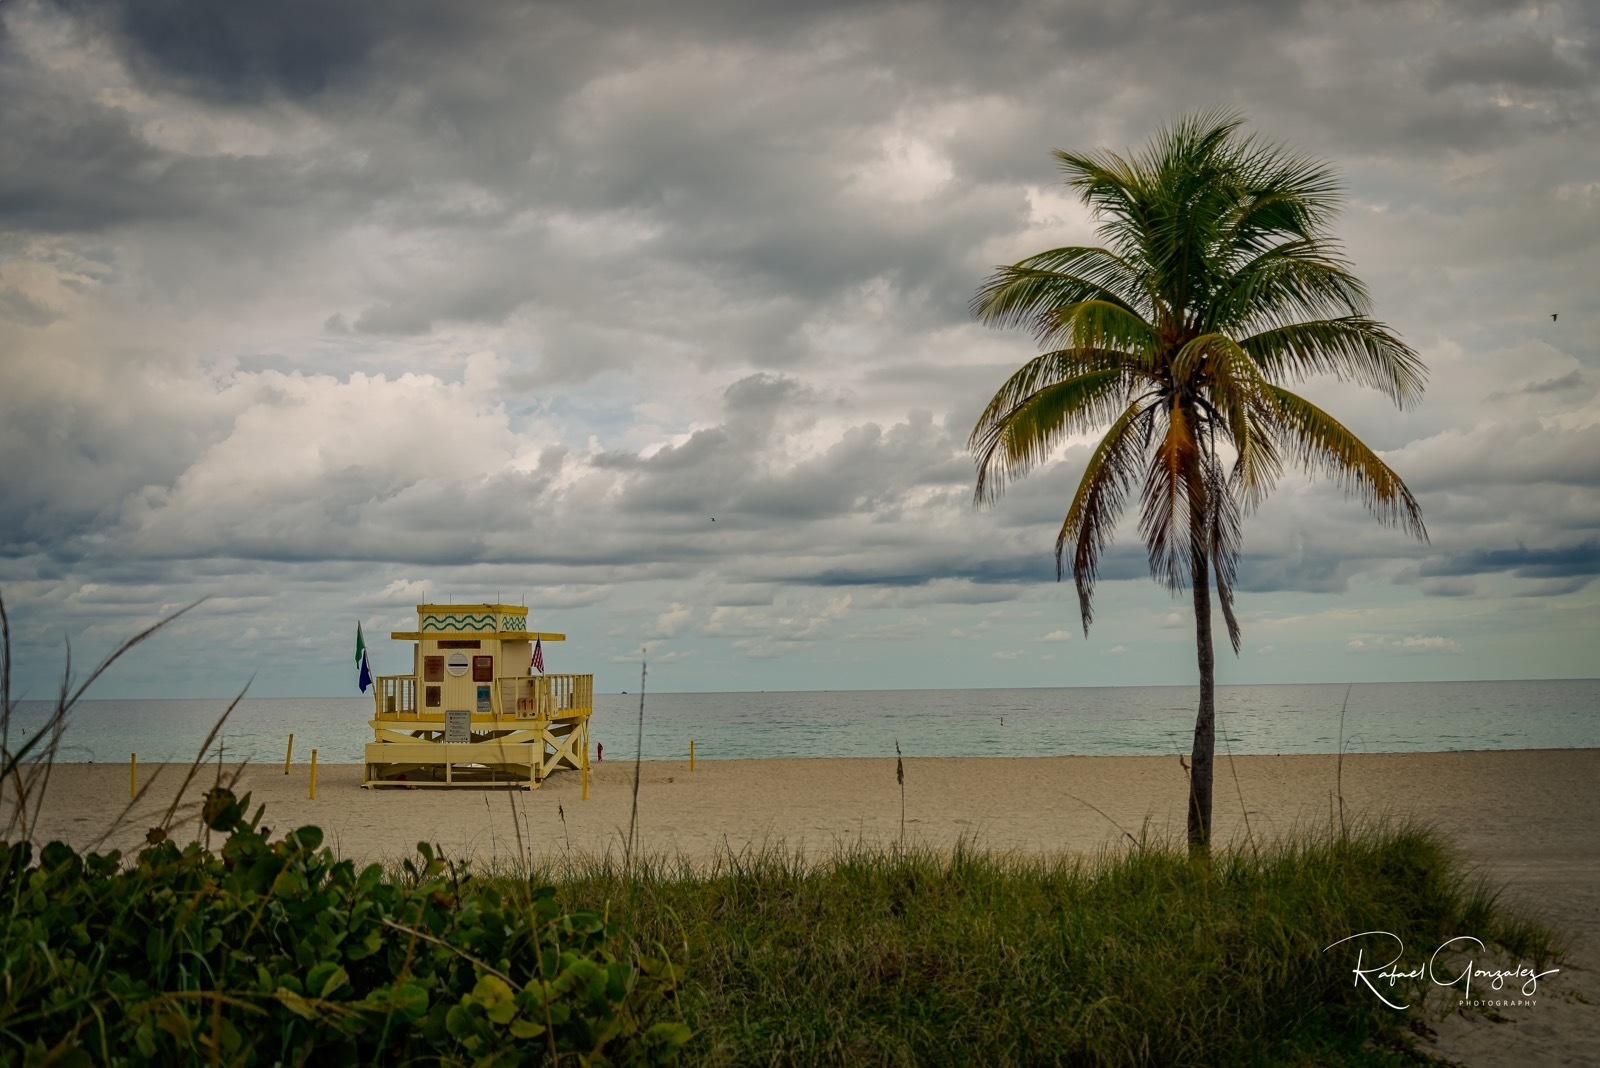 Cloudy Beach by themagiclensphotography